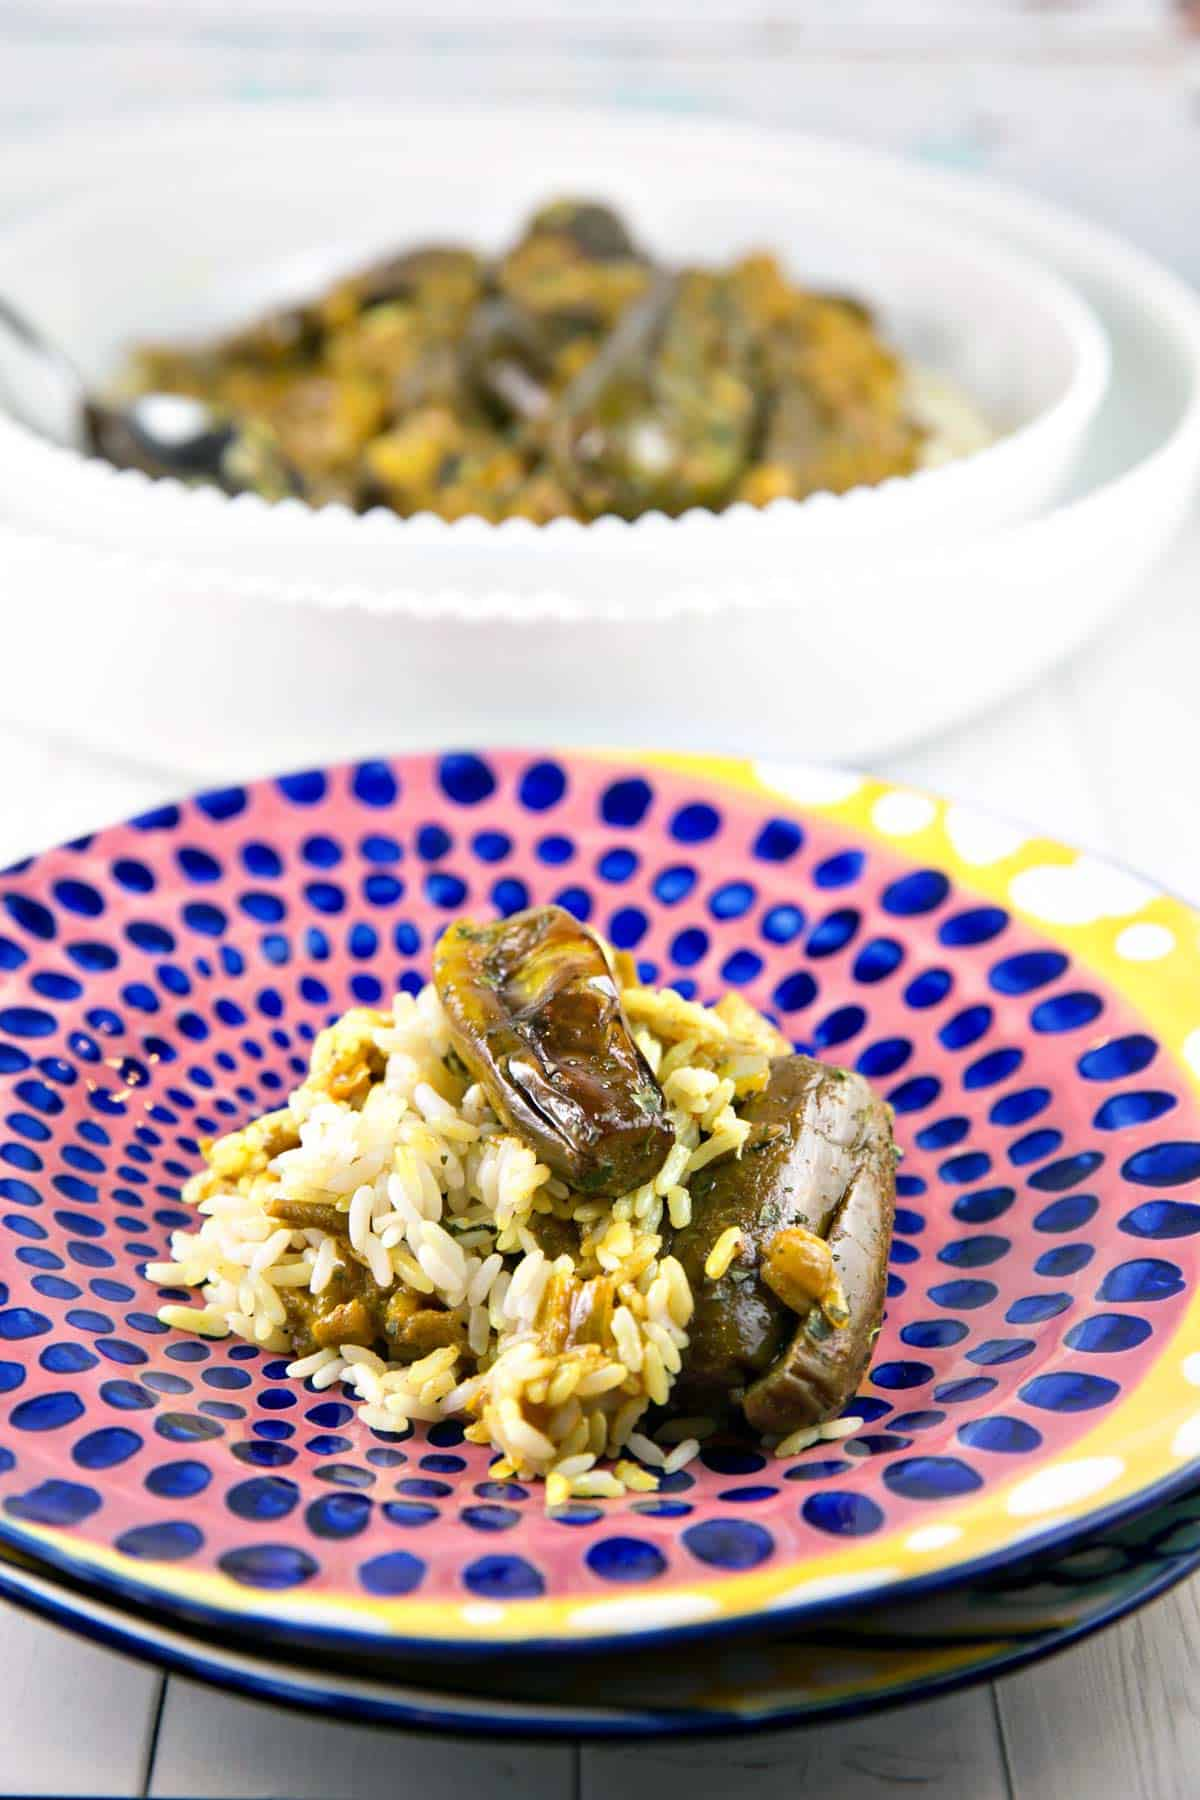 Eggplant Curry with Coconut Milk: vegan and gluten free, this 30-minute meal is the answer to getting out of your weeknight cooking rut. #bunsenburnerbakery #curry #eggplant #glutenfree #vegan